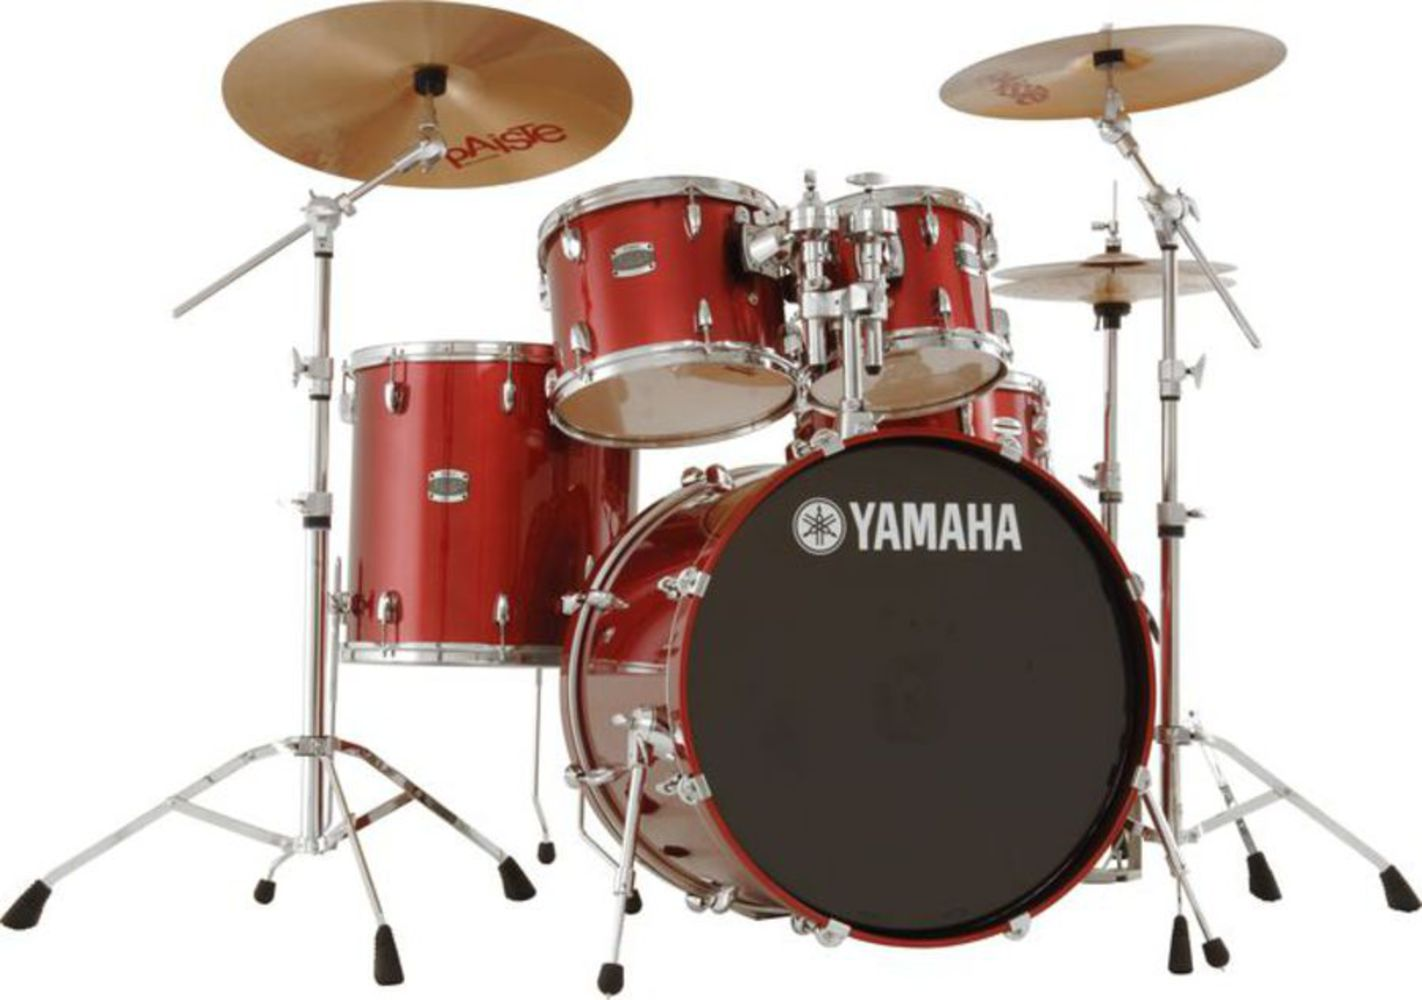 Yamaha stage custom drum kit.thumb